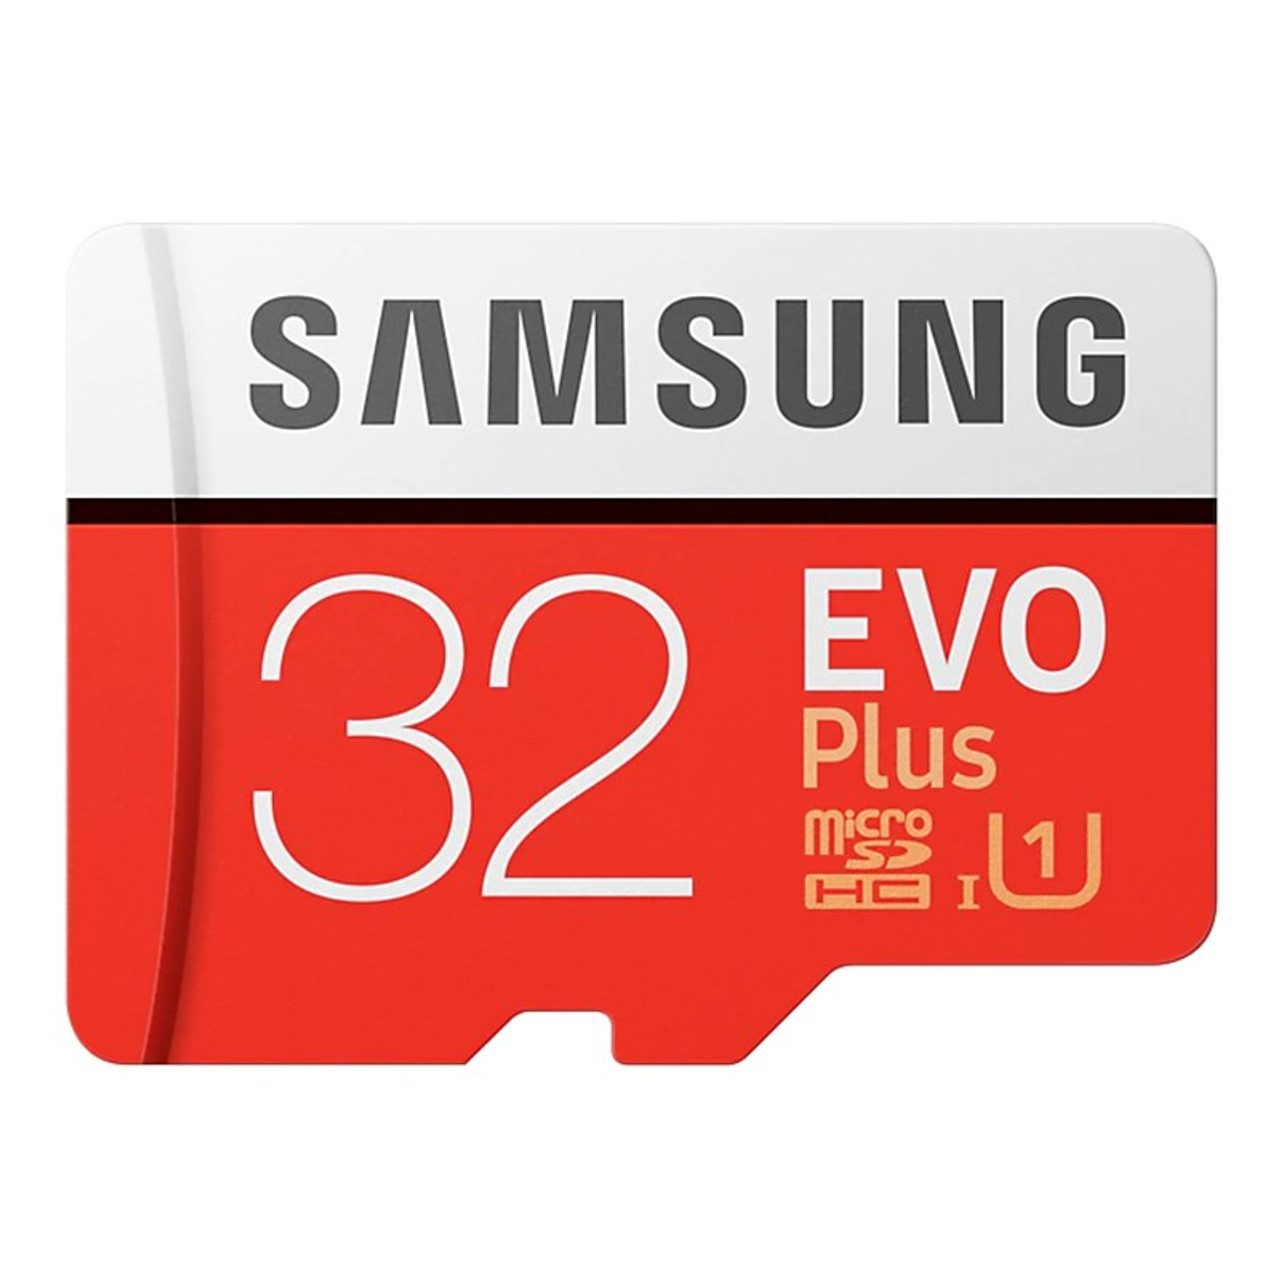 Image for Samsung 32GB microSDXC EVO Plus UHS-I Class 10 Memory Card - No Adapter CX Computer Superstore